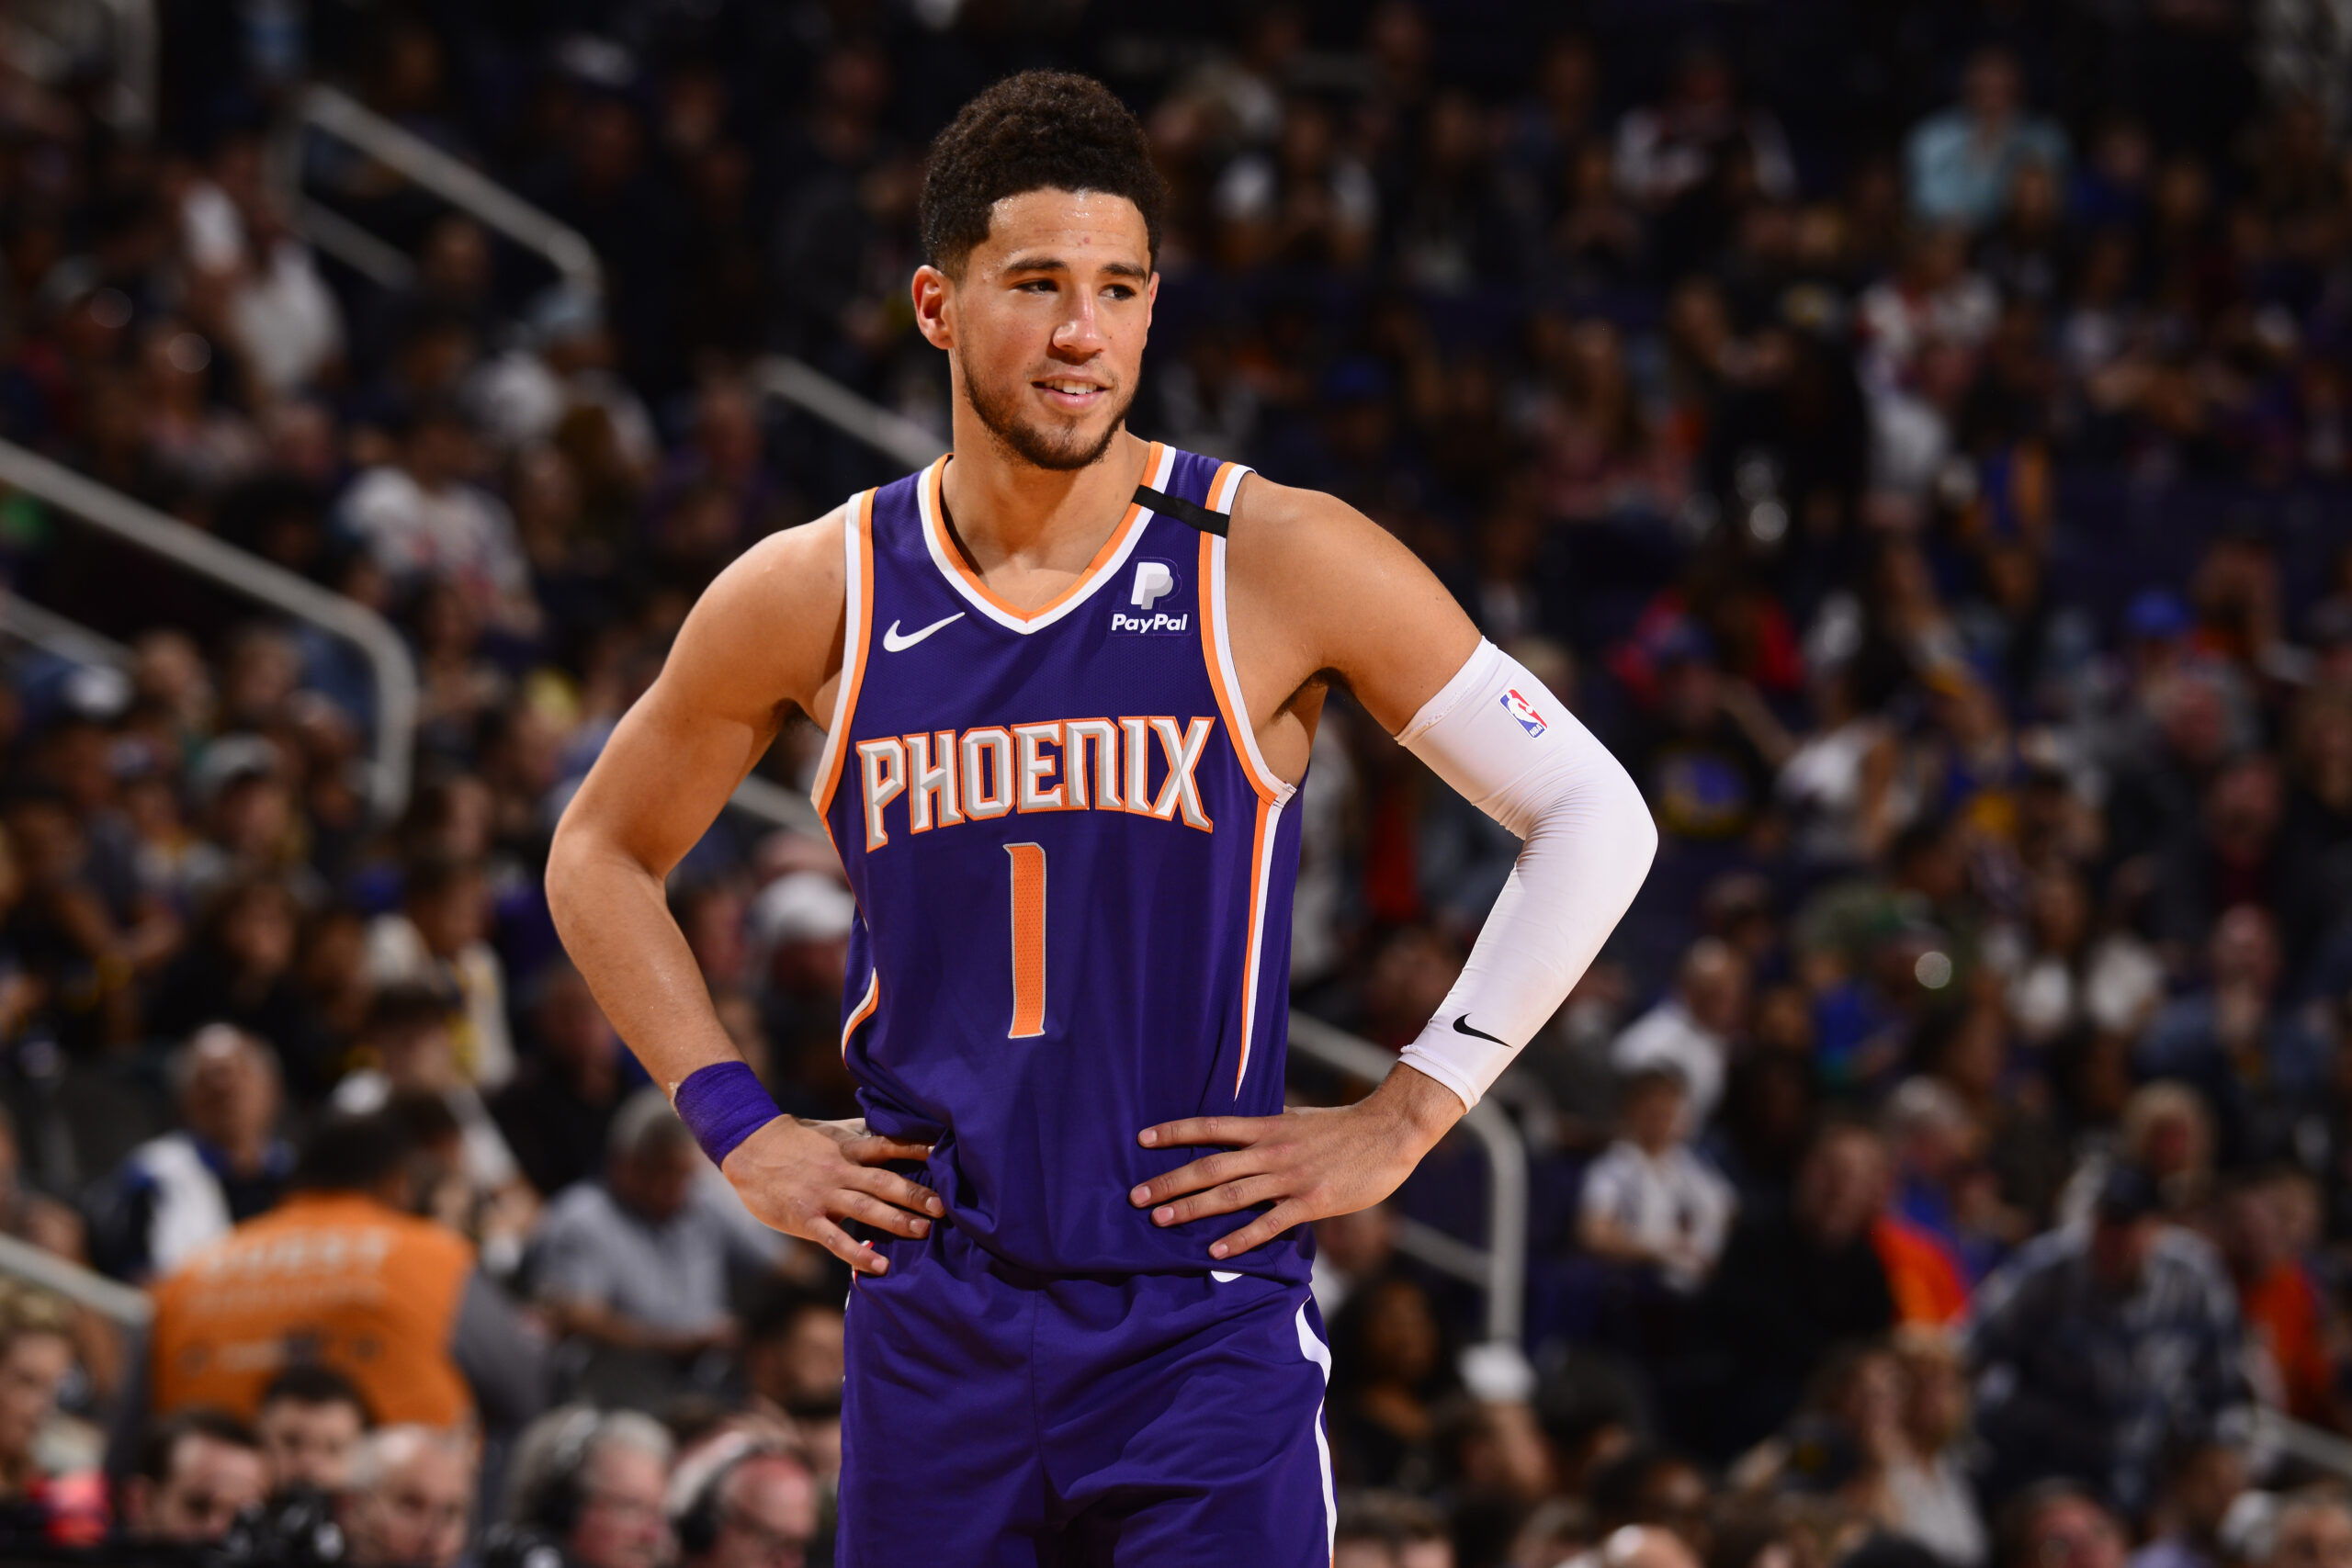 Devin Booker tips off Twitch fundraising campaign with $100,000 donation in support of COVID-19 relief efforts